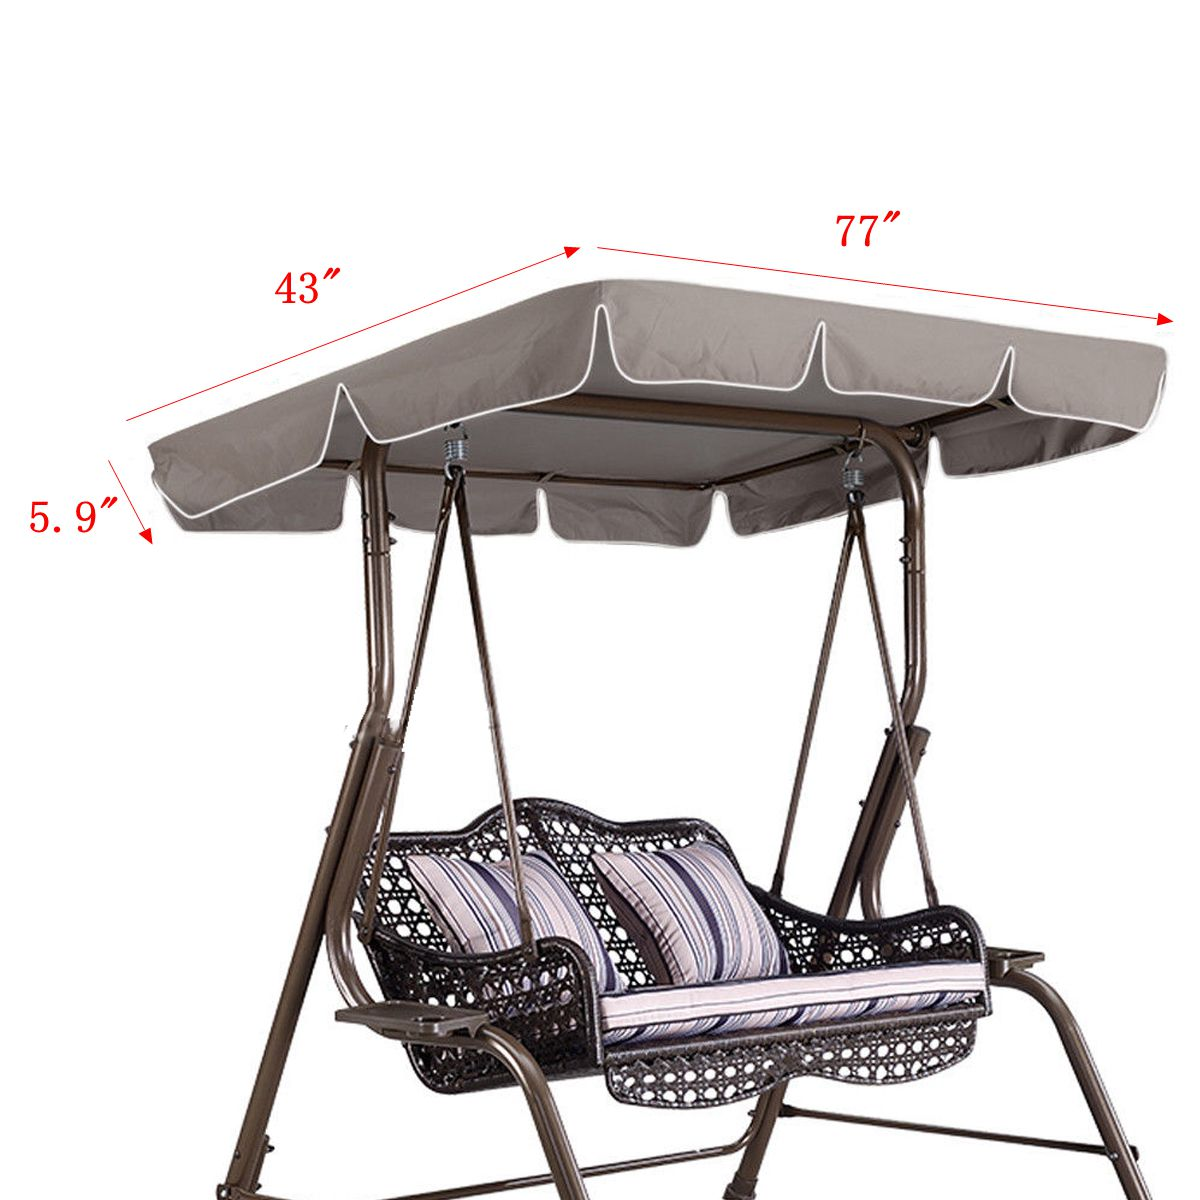 77 X43 X5 9 Waterproof Swing Chair Awning Top Cover